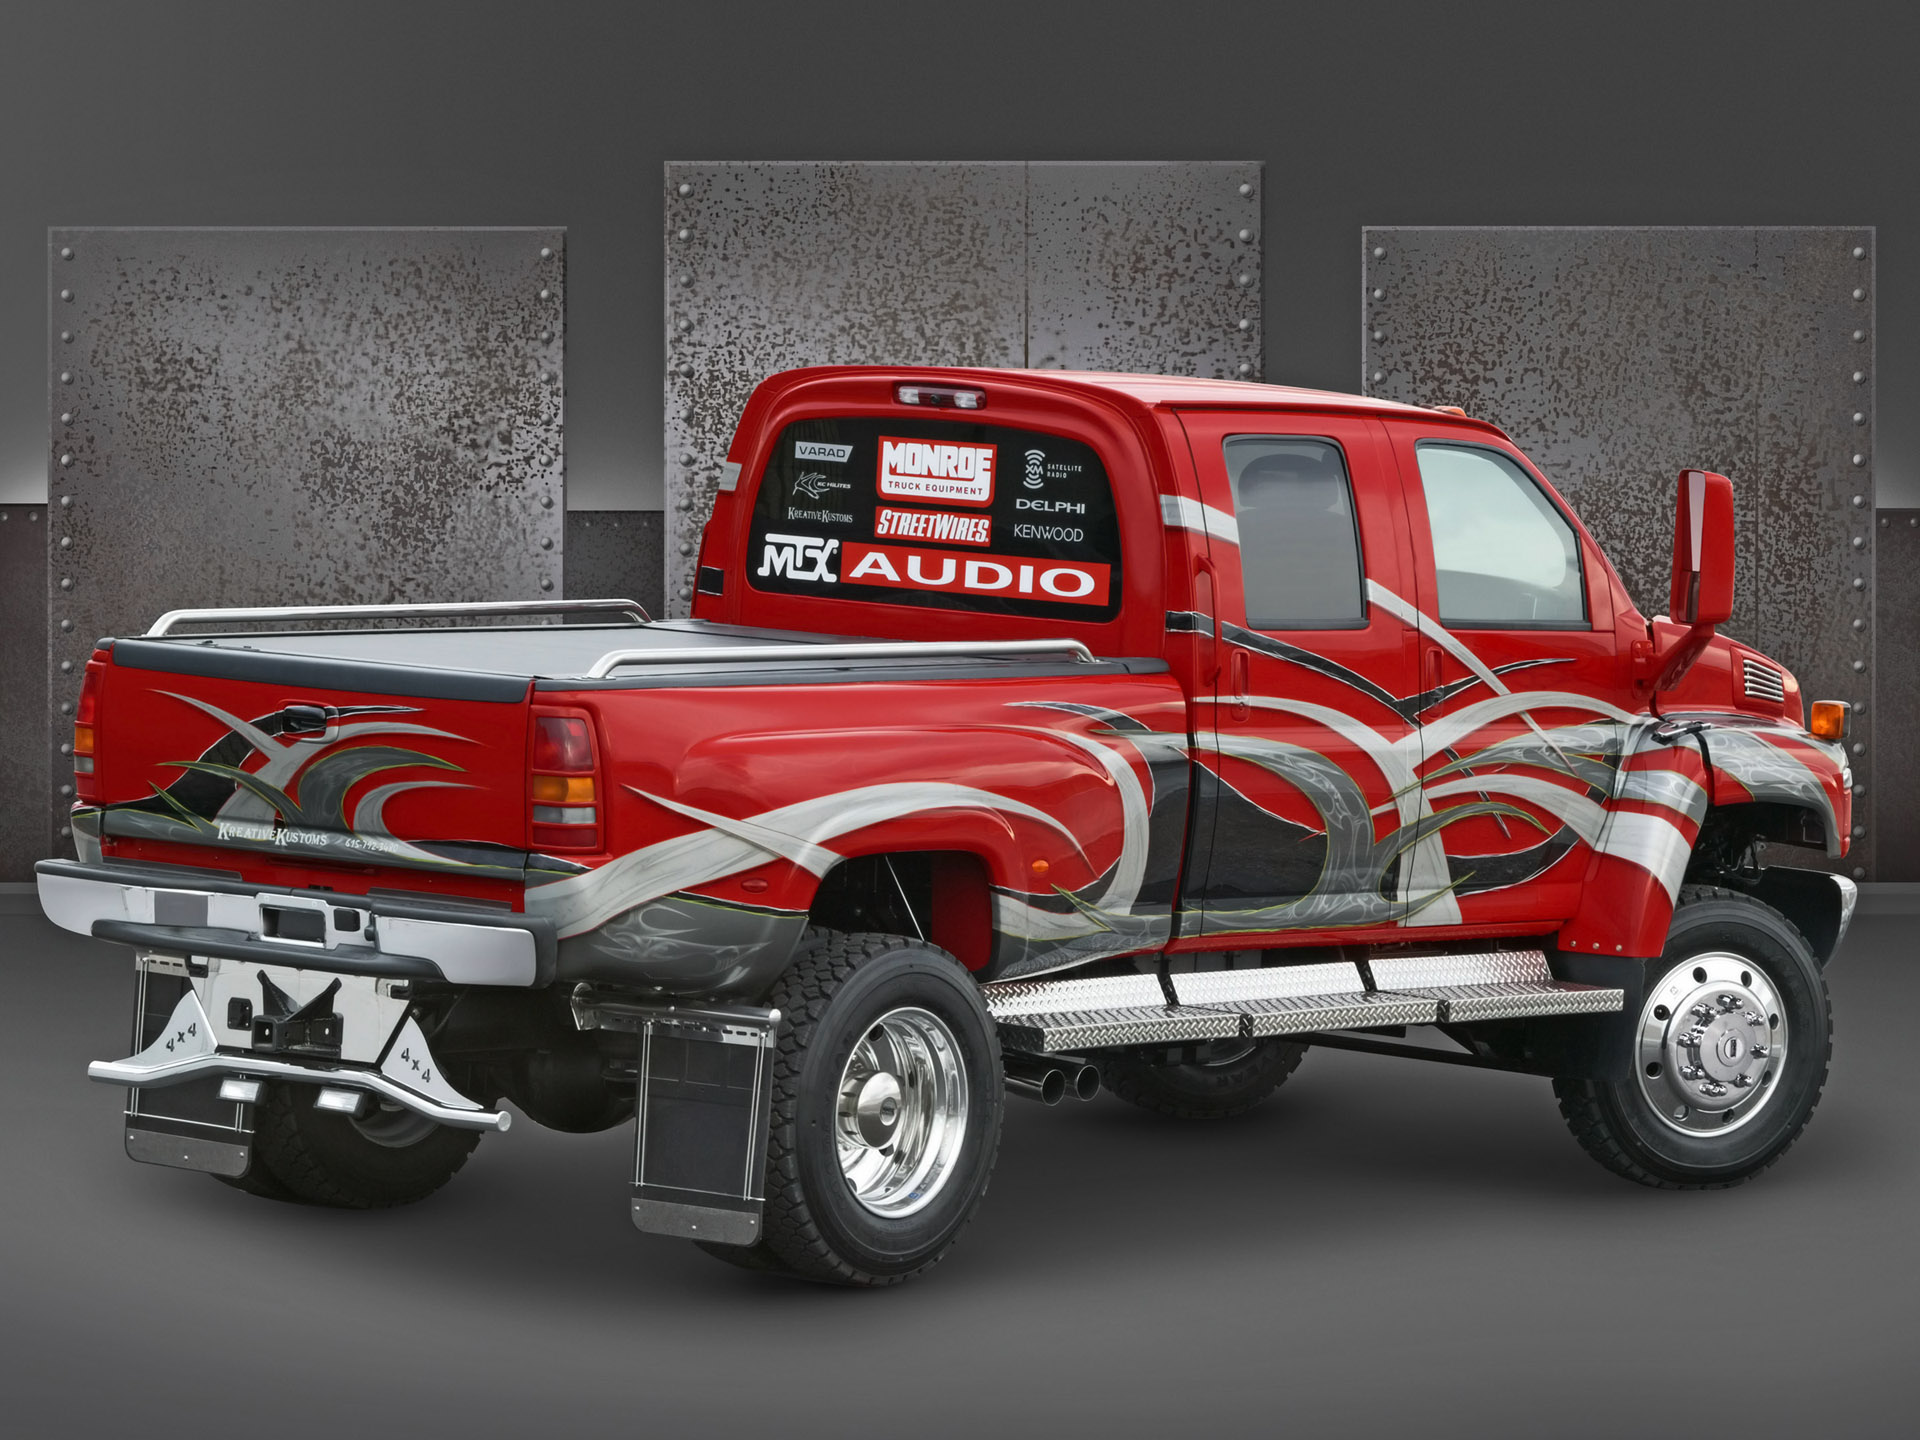 2005 Chevrolet C4500 Medium Duty Truck at SEMA   Rear Angle 1920x1440